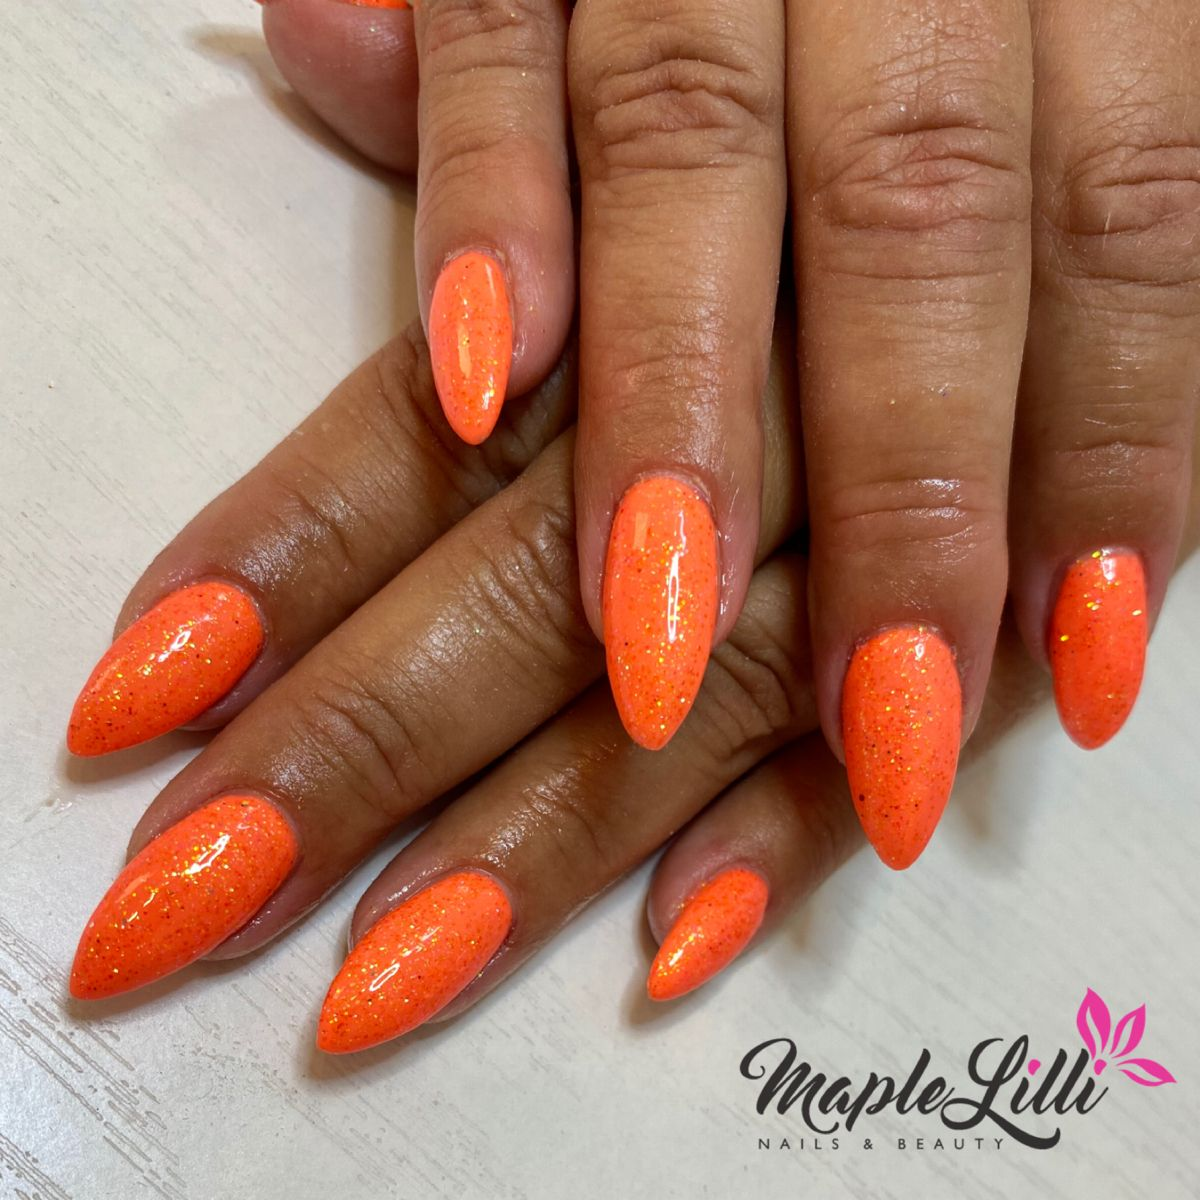 Holiday time. Peach by @thegelbottleinc with an irridescent twist. #nails #nailsofinstagram #orangenails #holiday #sun #thegelbottle #acrylicnails #acrylic